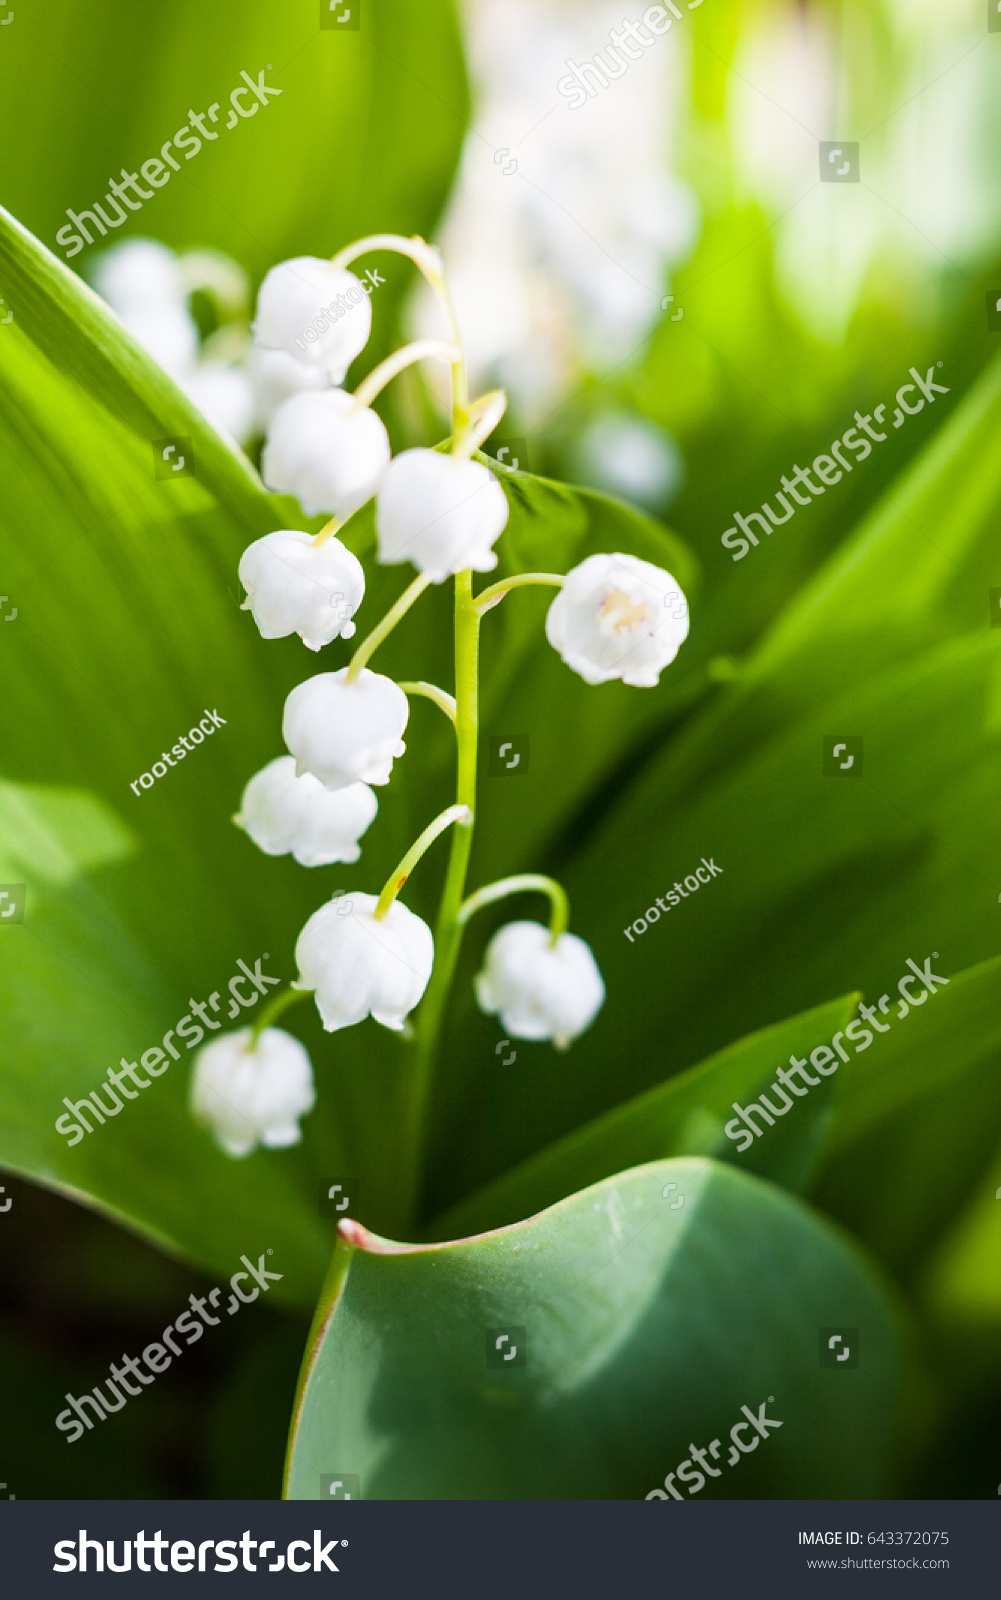 Blooming lily of the valley in spring garden ez canvas izmirmasajfo